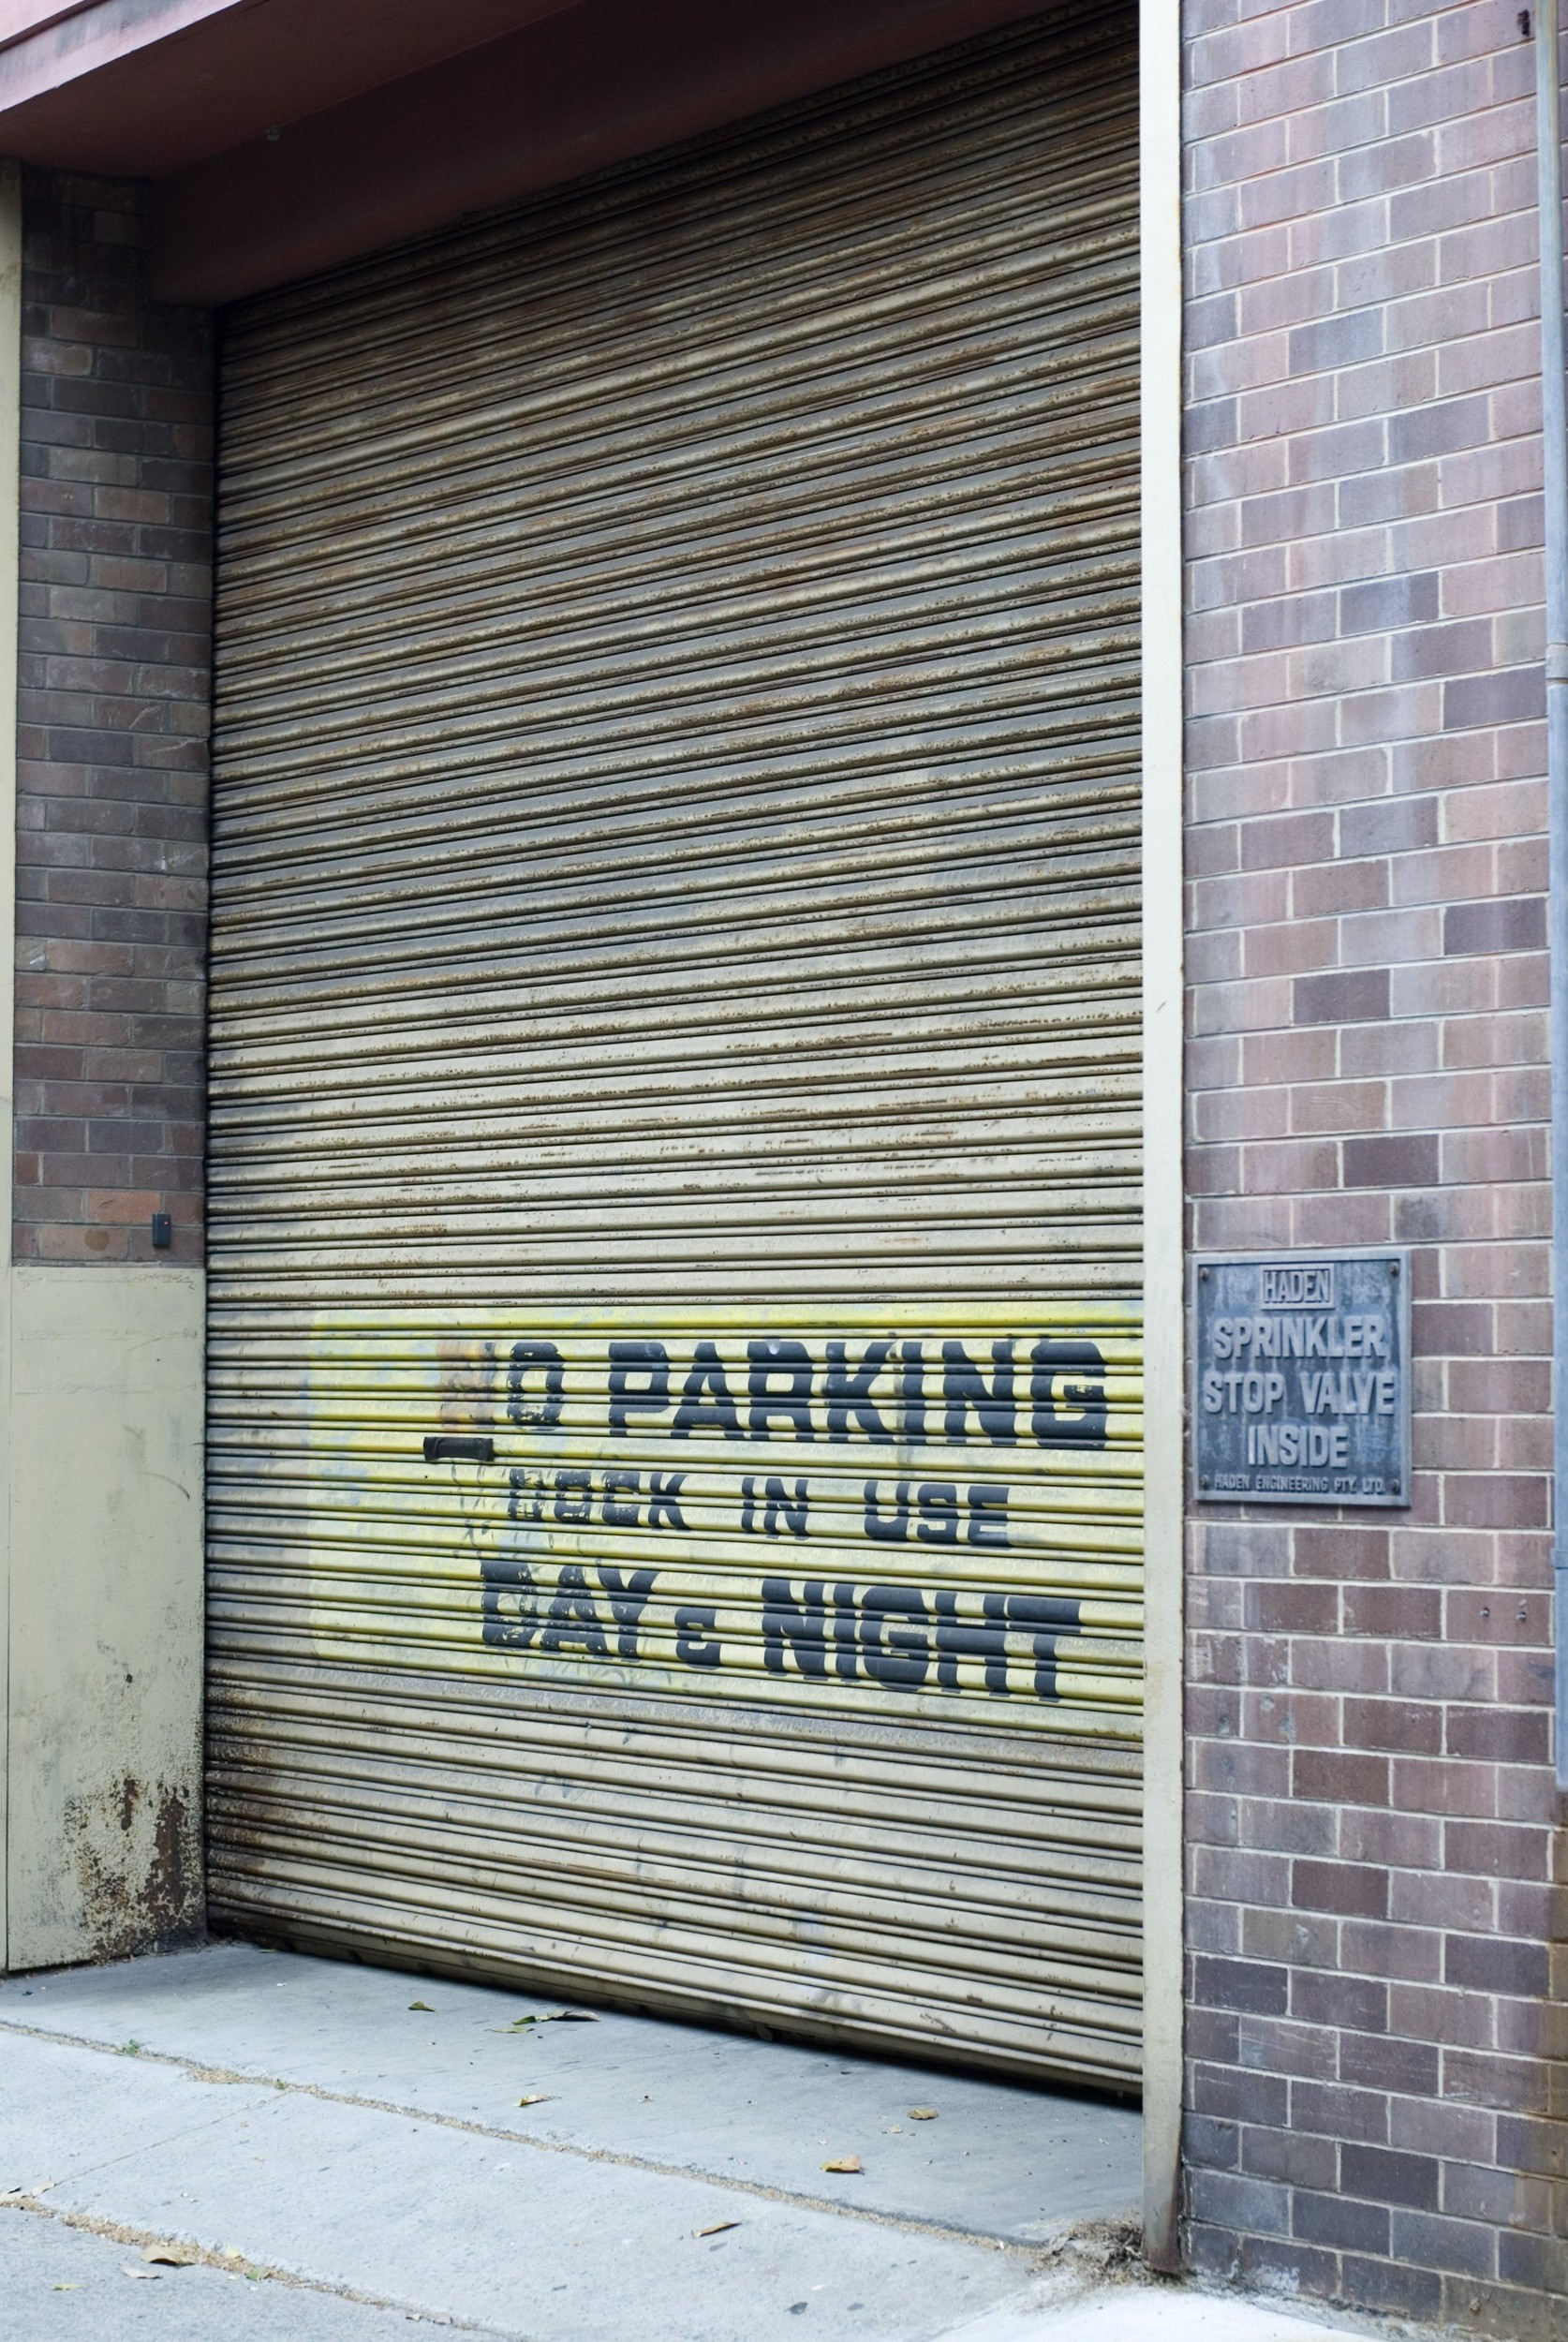 an alleyway roller shutter door marked with no parking